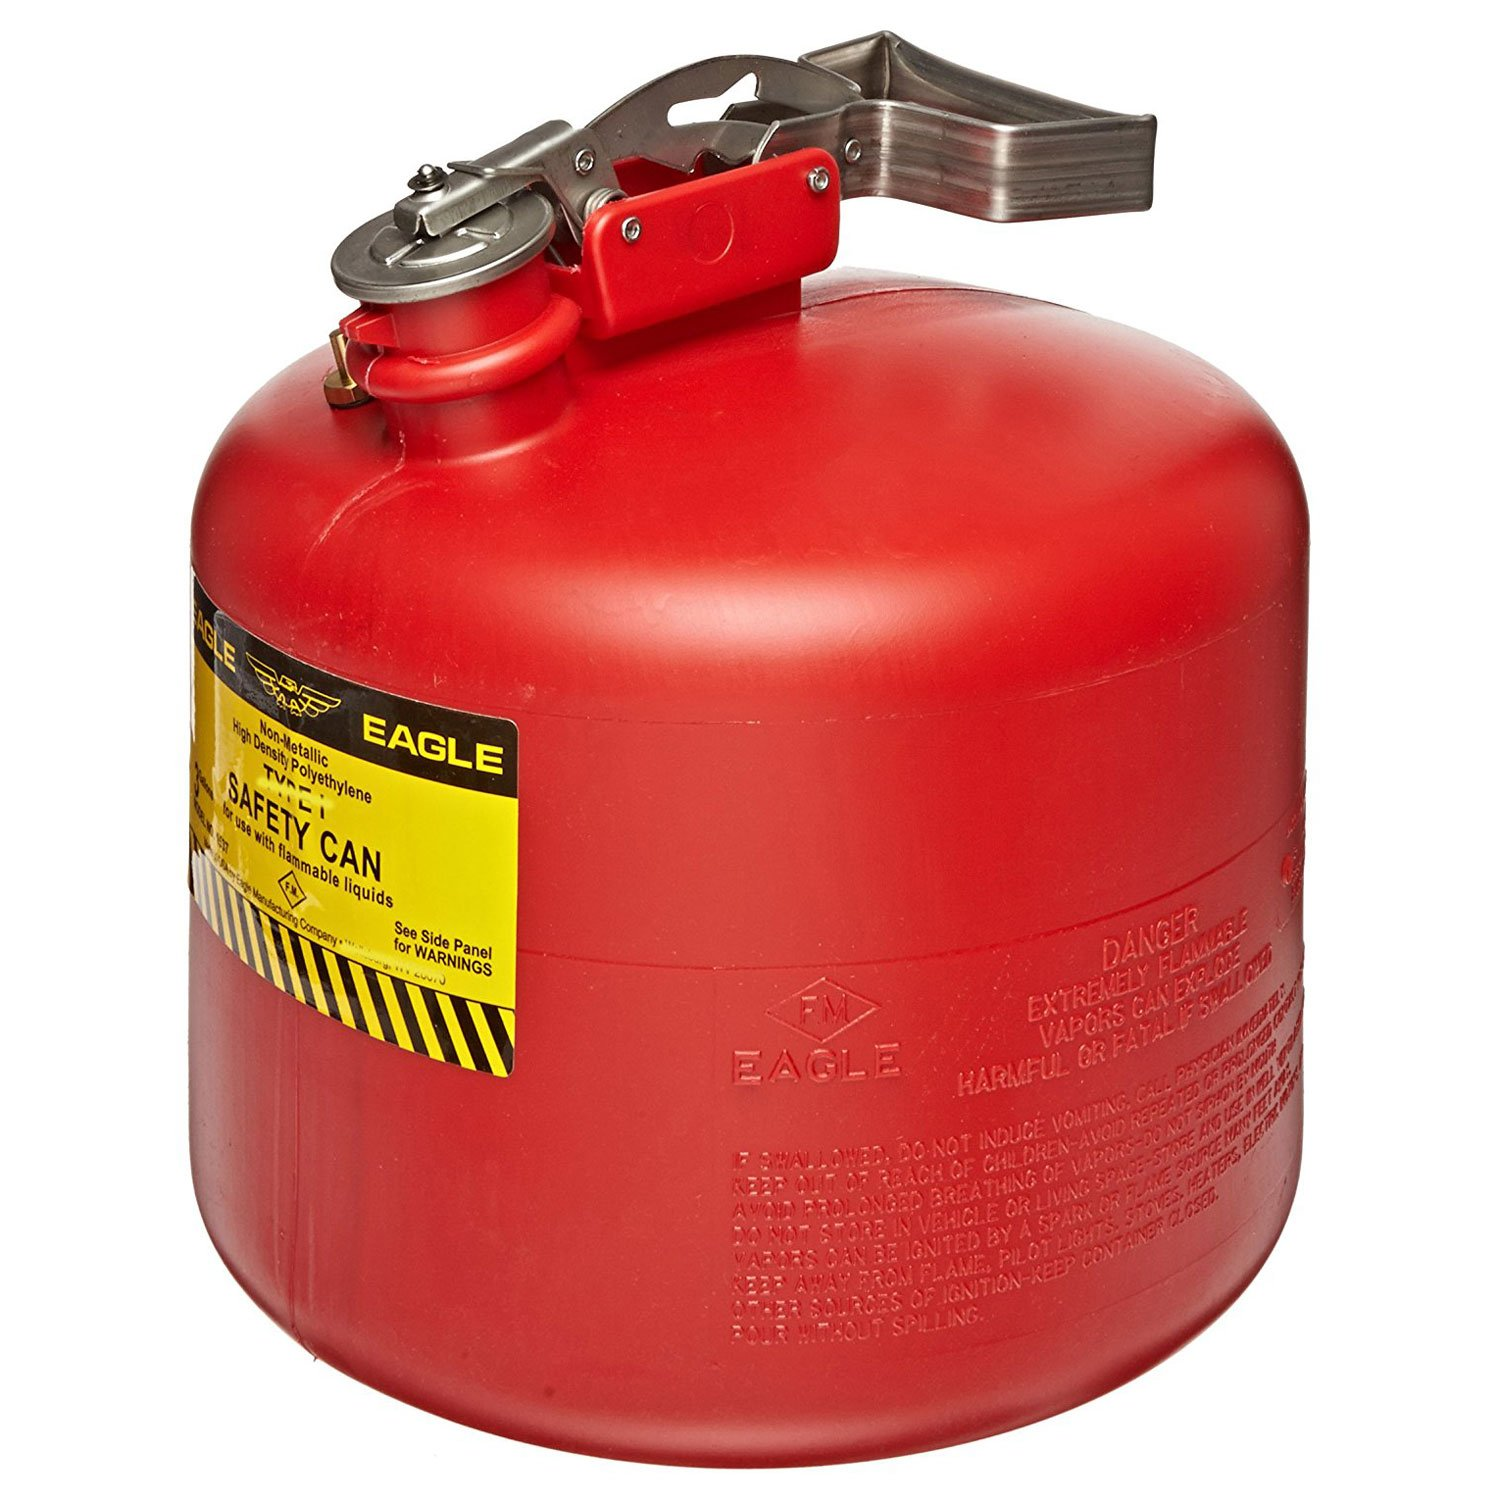 Eagle 1537 Type I Safety Can, 12-1/2'' Width x 13'' Depth, 3 Gallon Capacity, Red